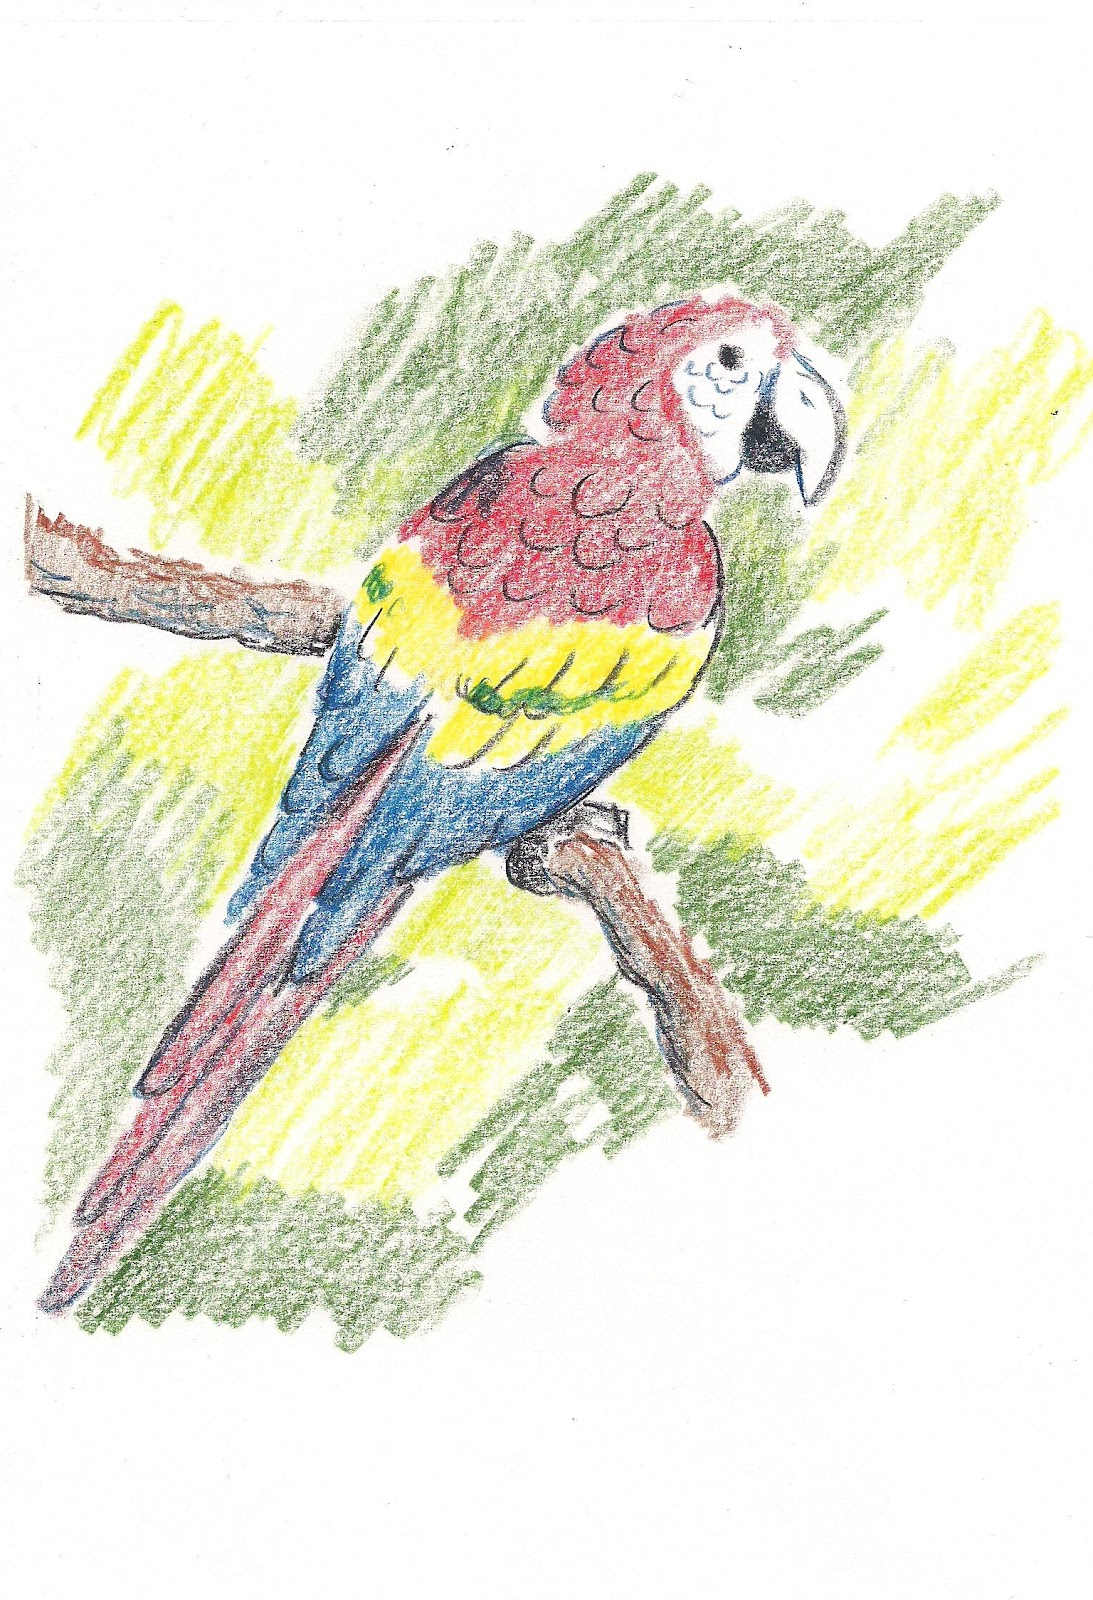 How To Draw Worksheets For The Young Artist How To Draw A Parrot Worksheet For Young Artist